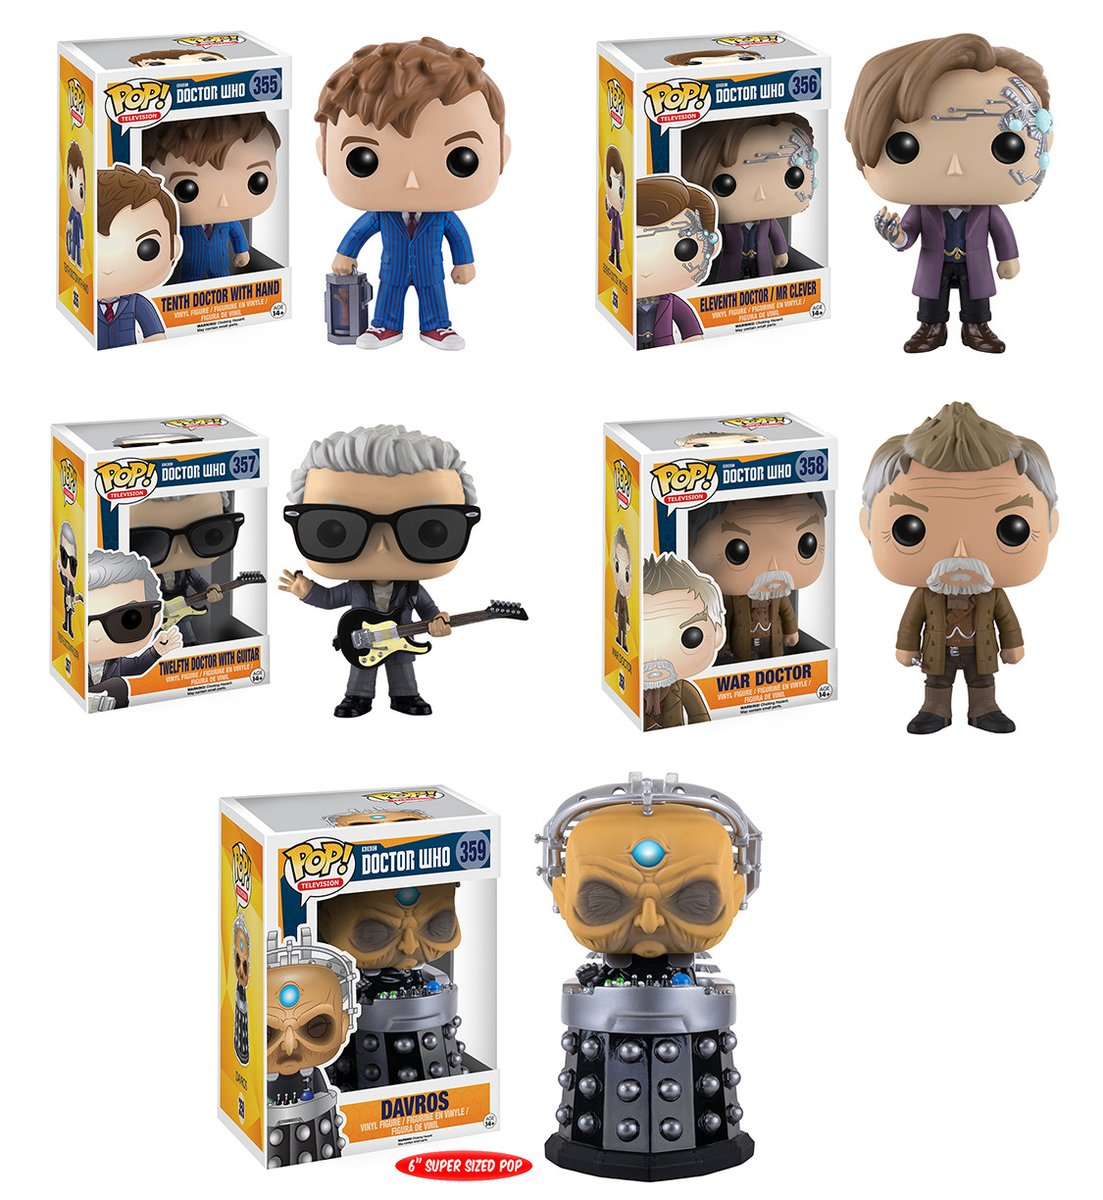 New Doctor Who Funko Pop Figures Available To Pre Order